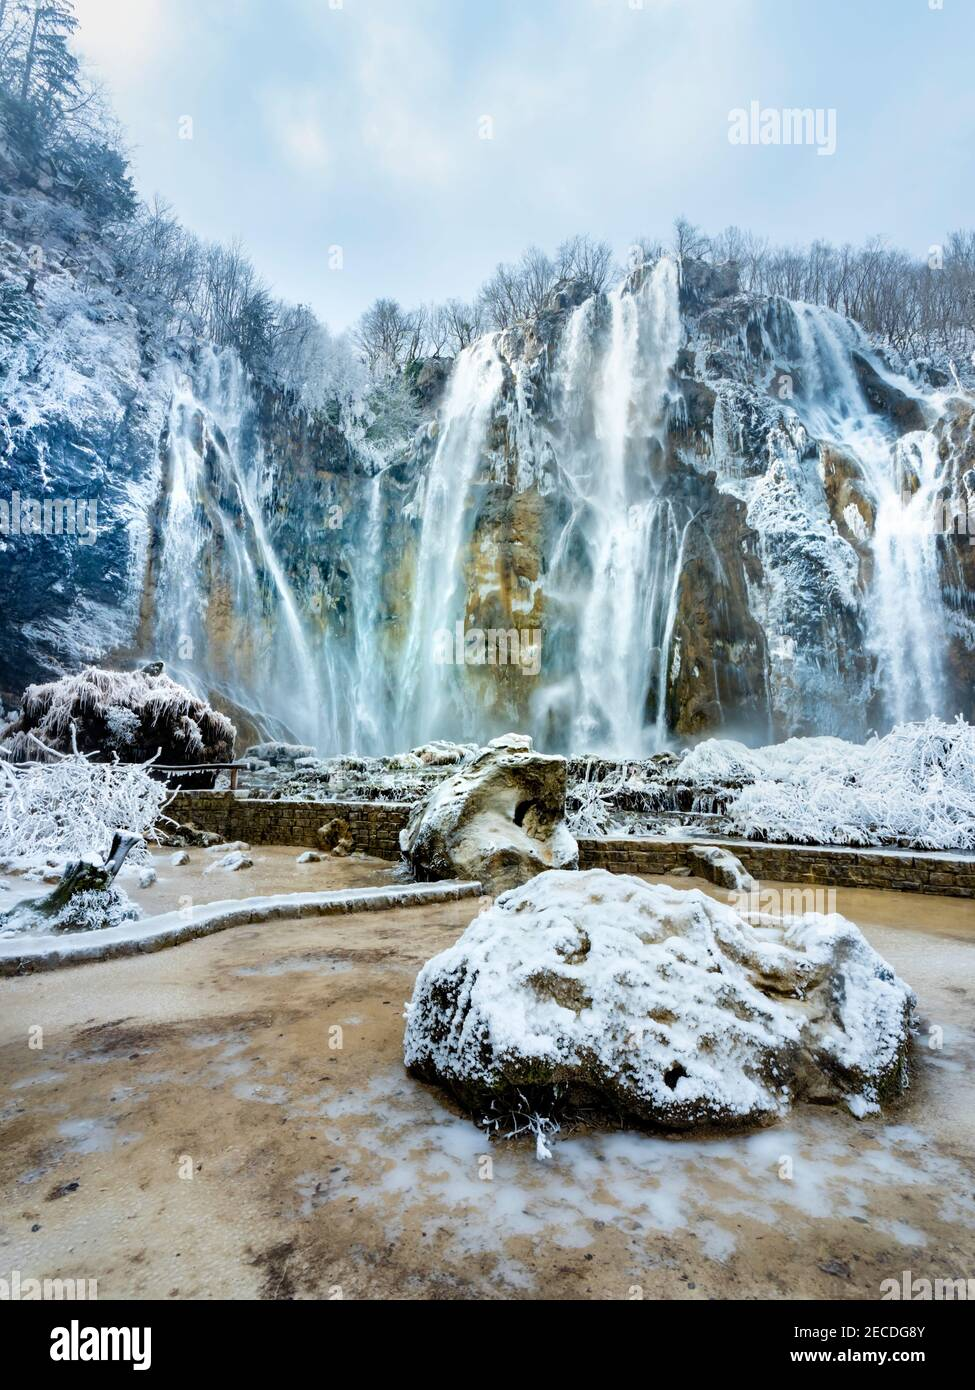 Veliki slap in National park Plitvice lakes in Croatia Europe in Winter under covered cover snow and ice famous landmark place Stock Photo